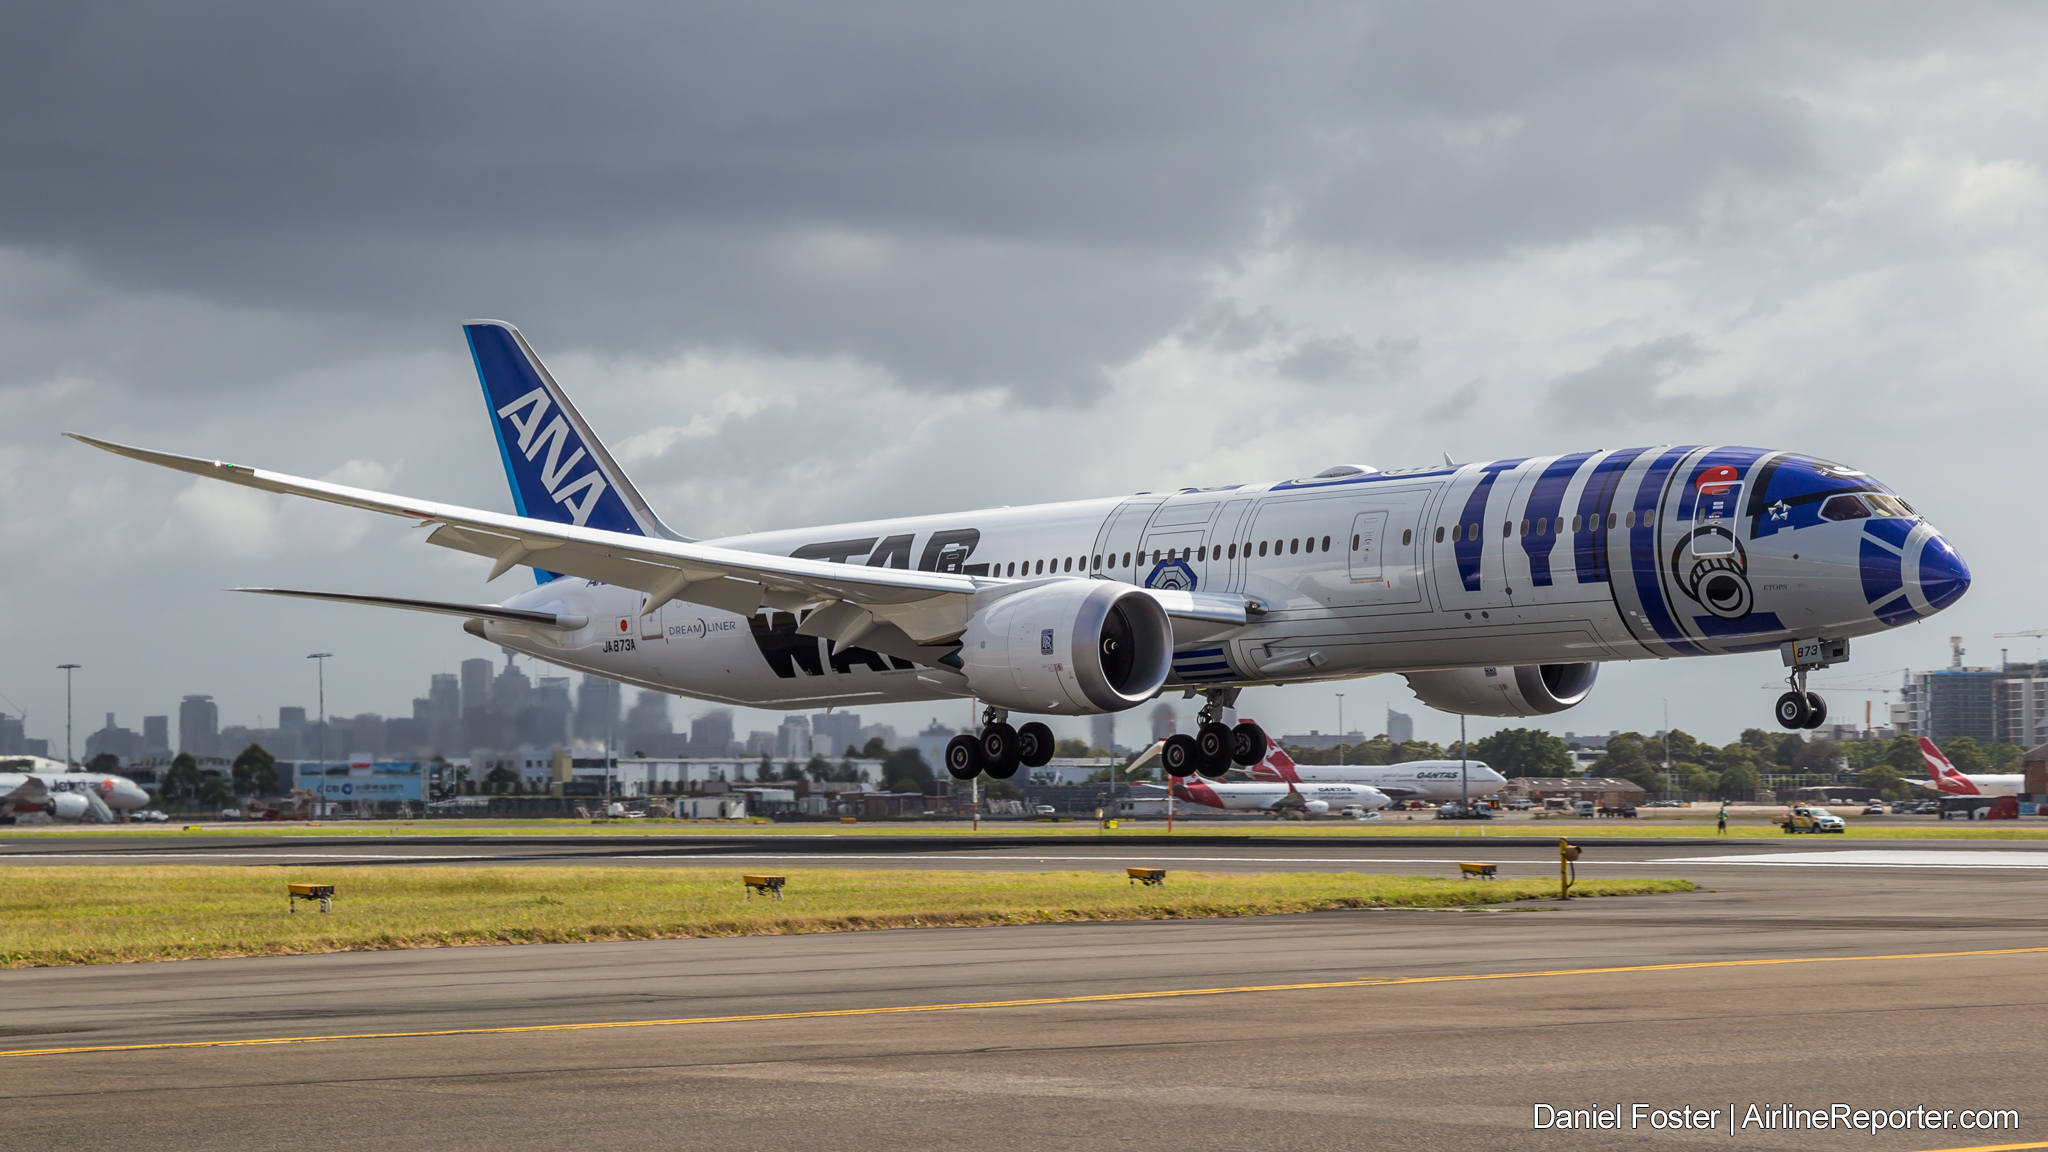 A380 Wallpaper Hd Ana Returns To Sydney In Style With The R2 D2 Star Wars